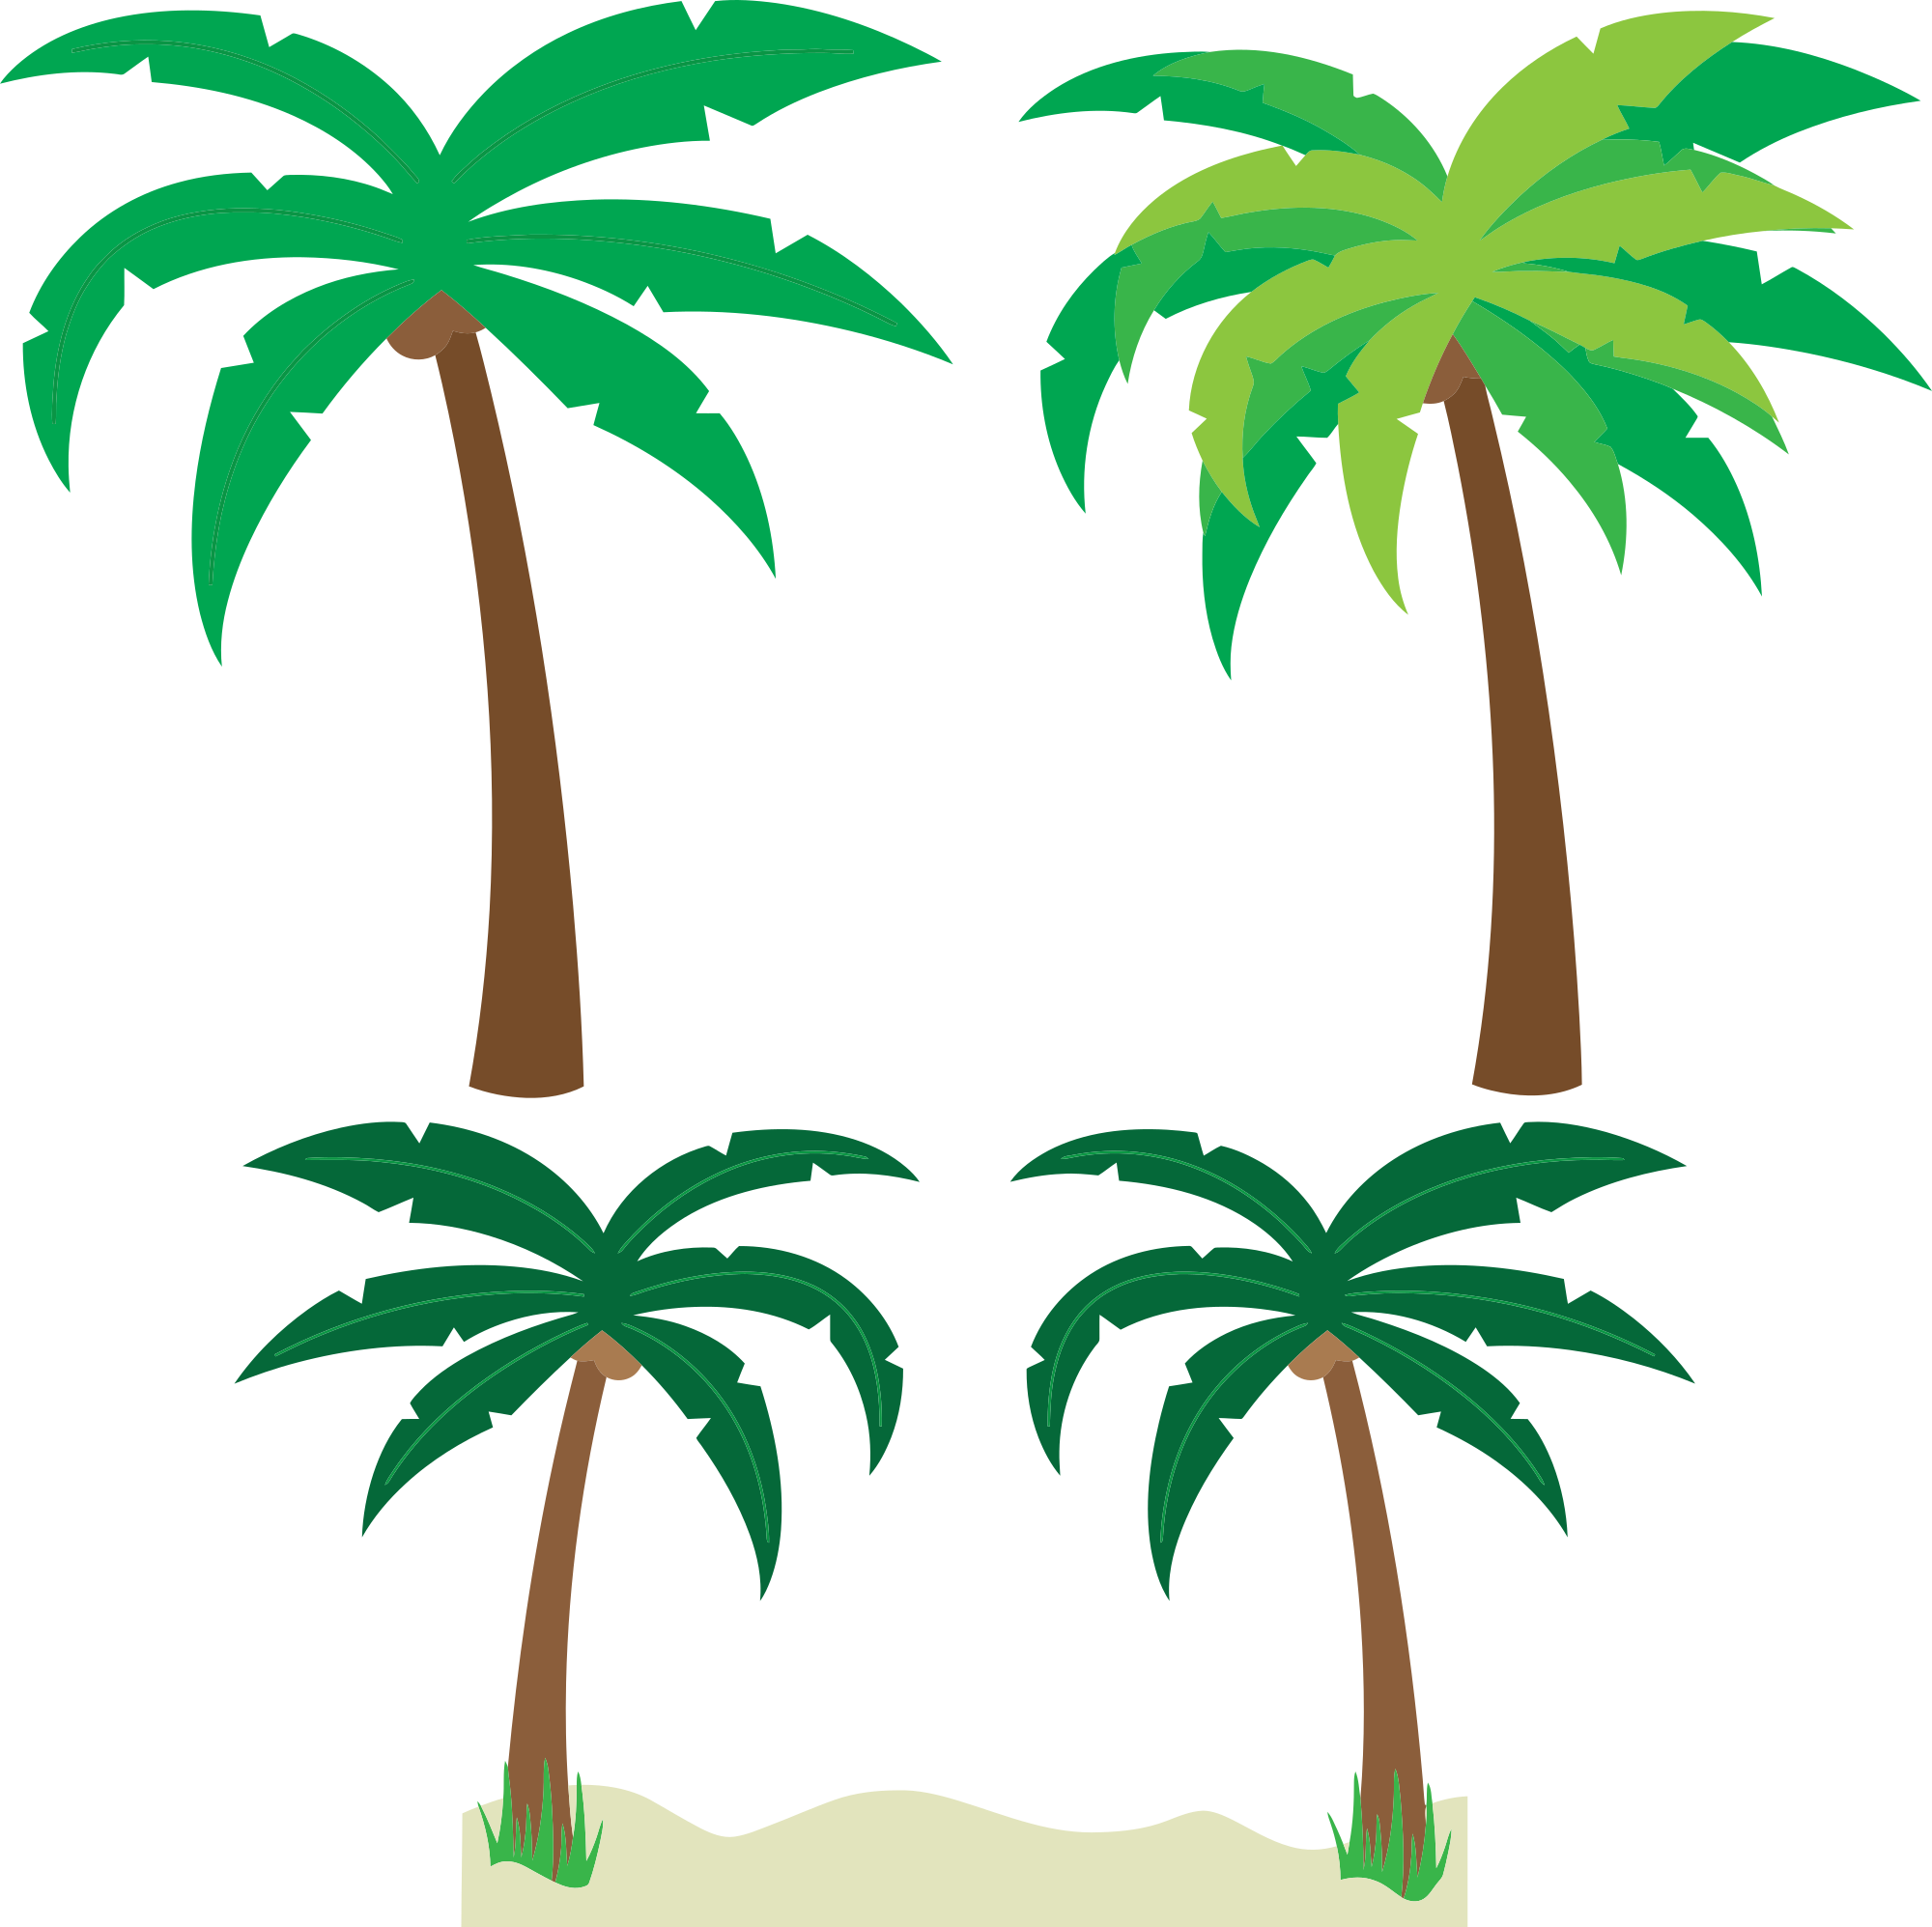 Free cartoon palm trees clipart clipart and vector image.